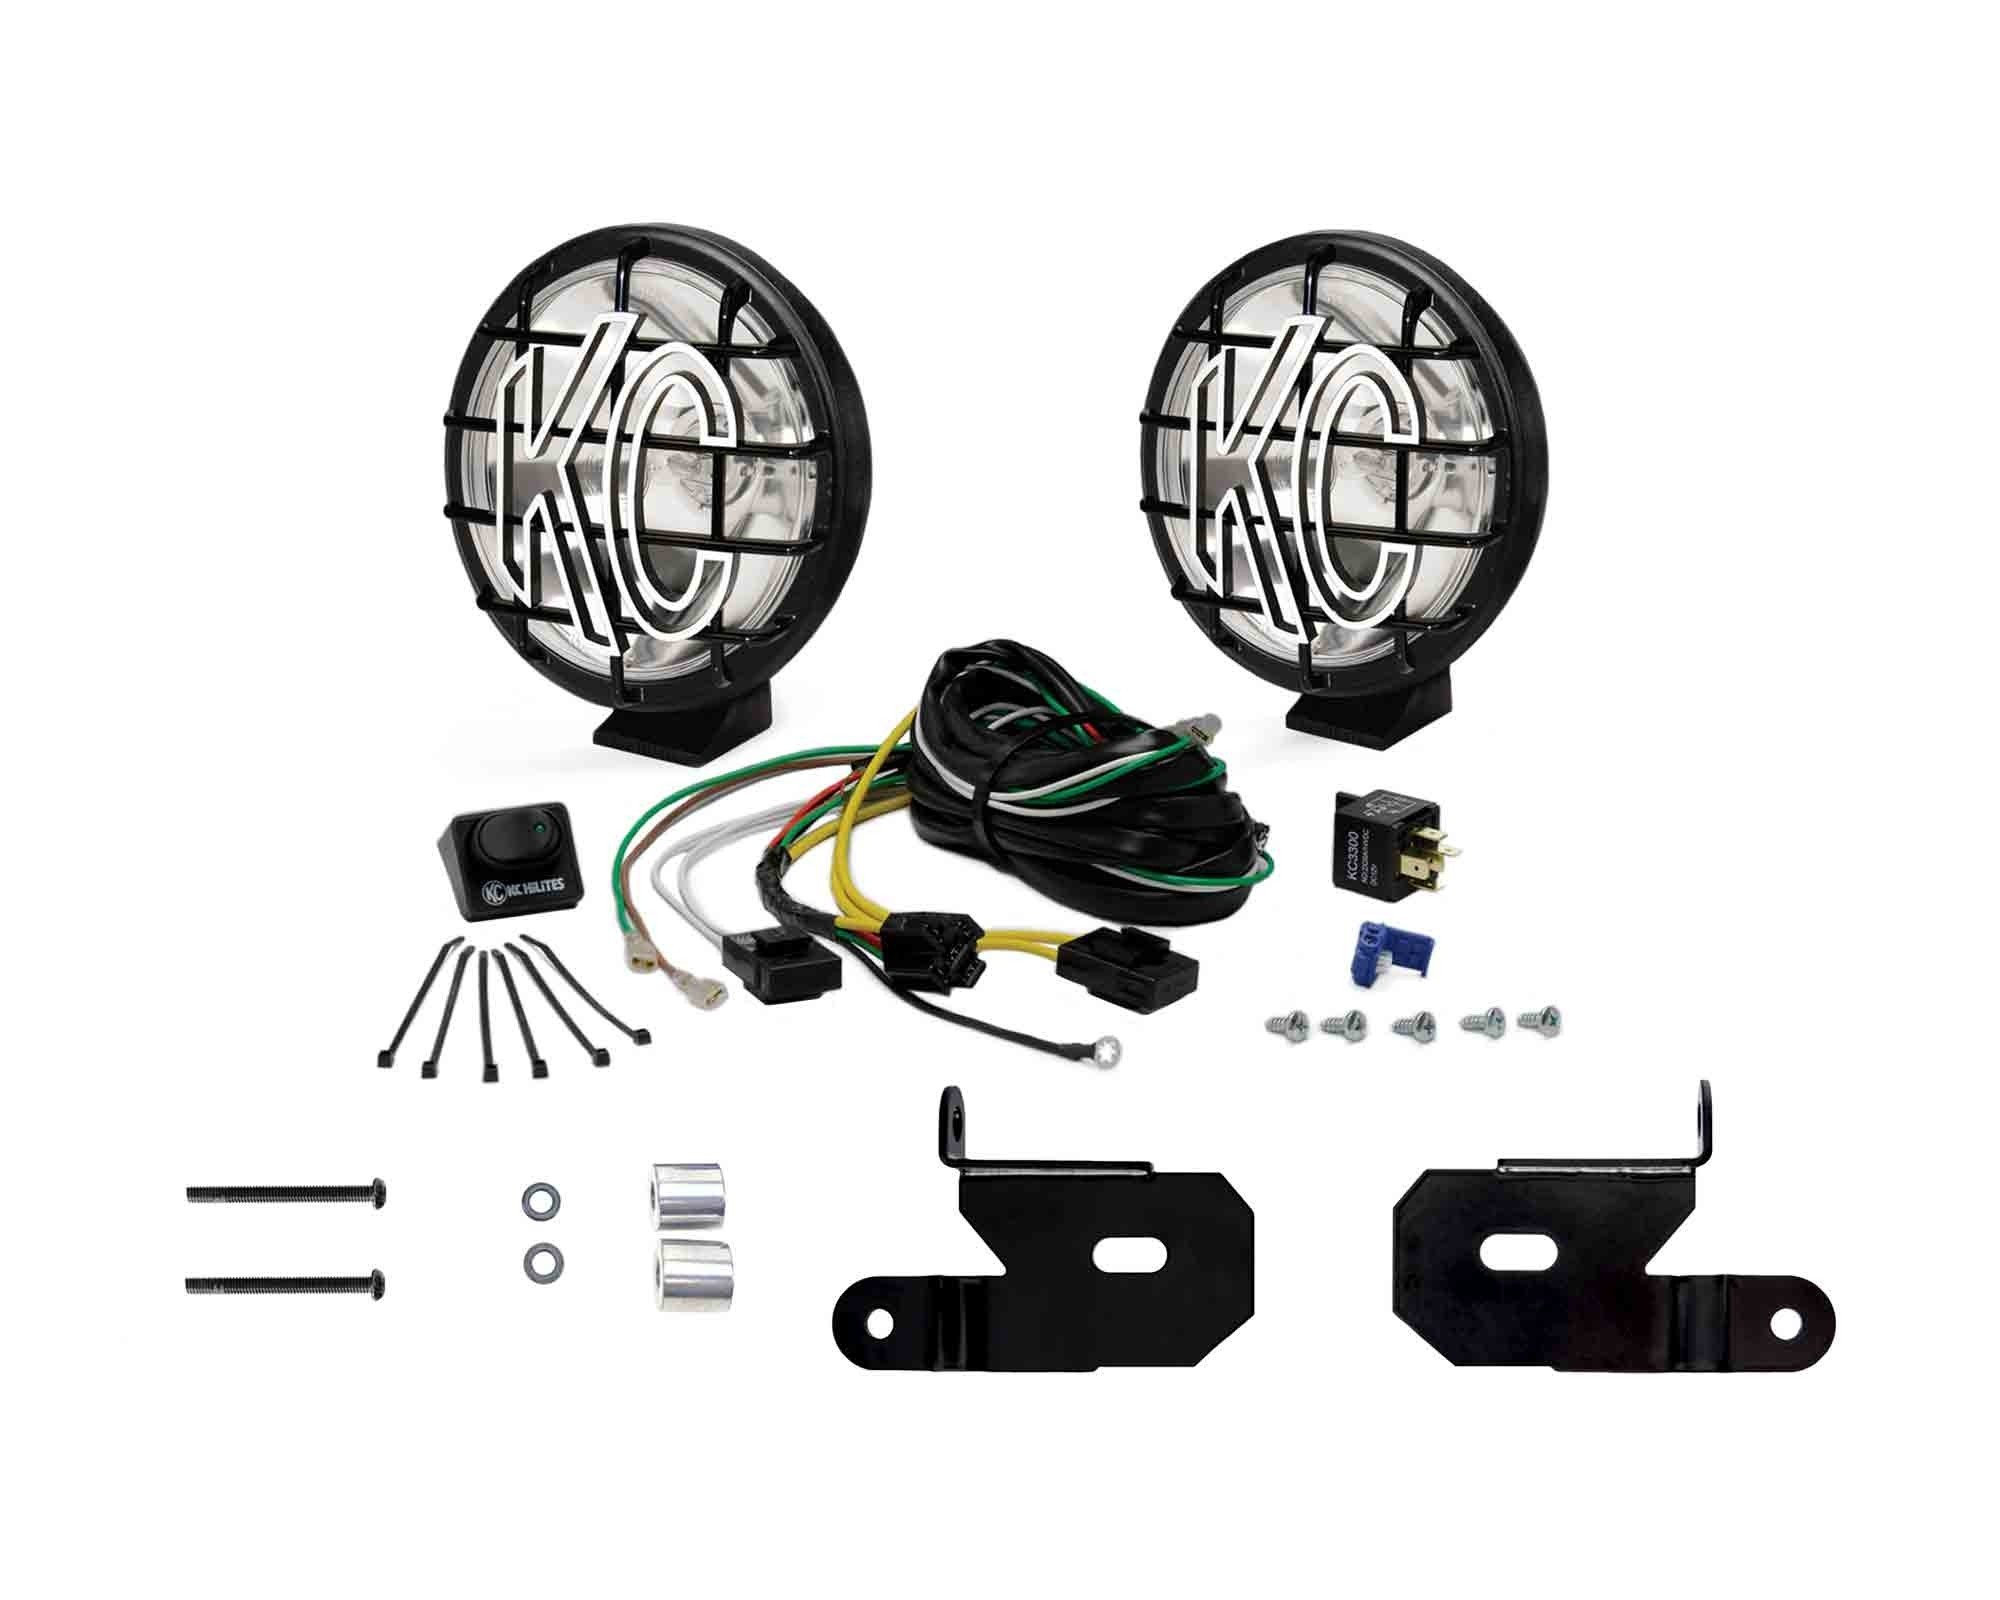 hight resolution of 6 kc lights wiring harness light wiring wiring harnesses led hid halogen light wiring solutions kc offers a variety of light wiring including wiring kits